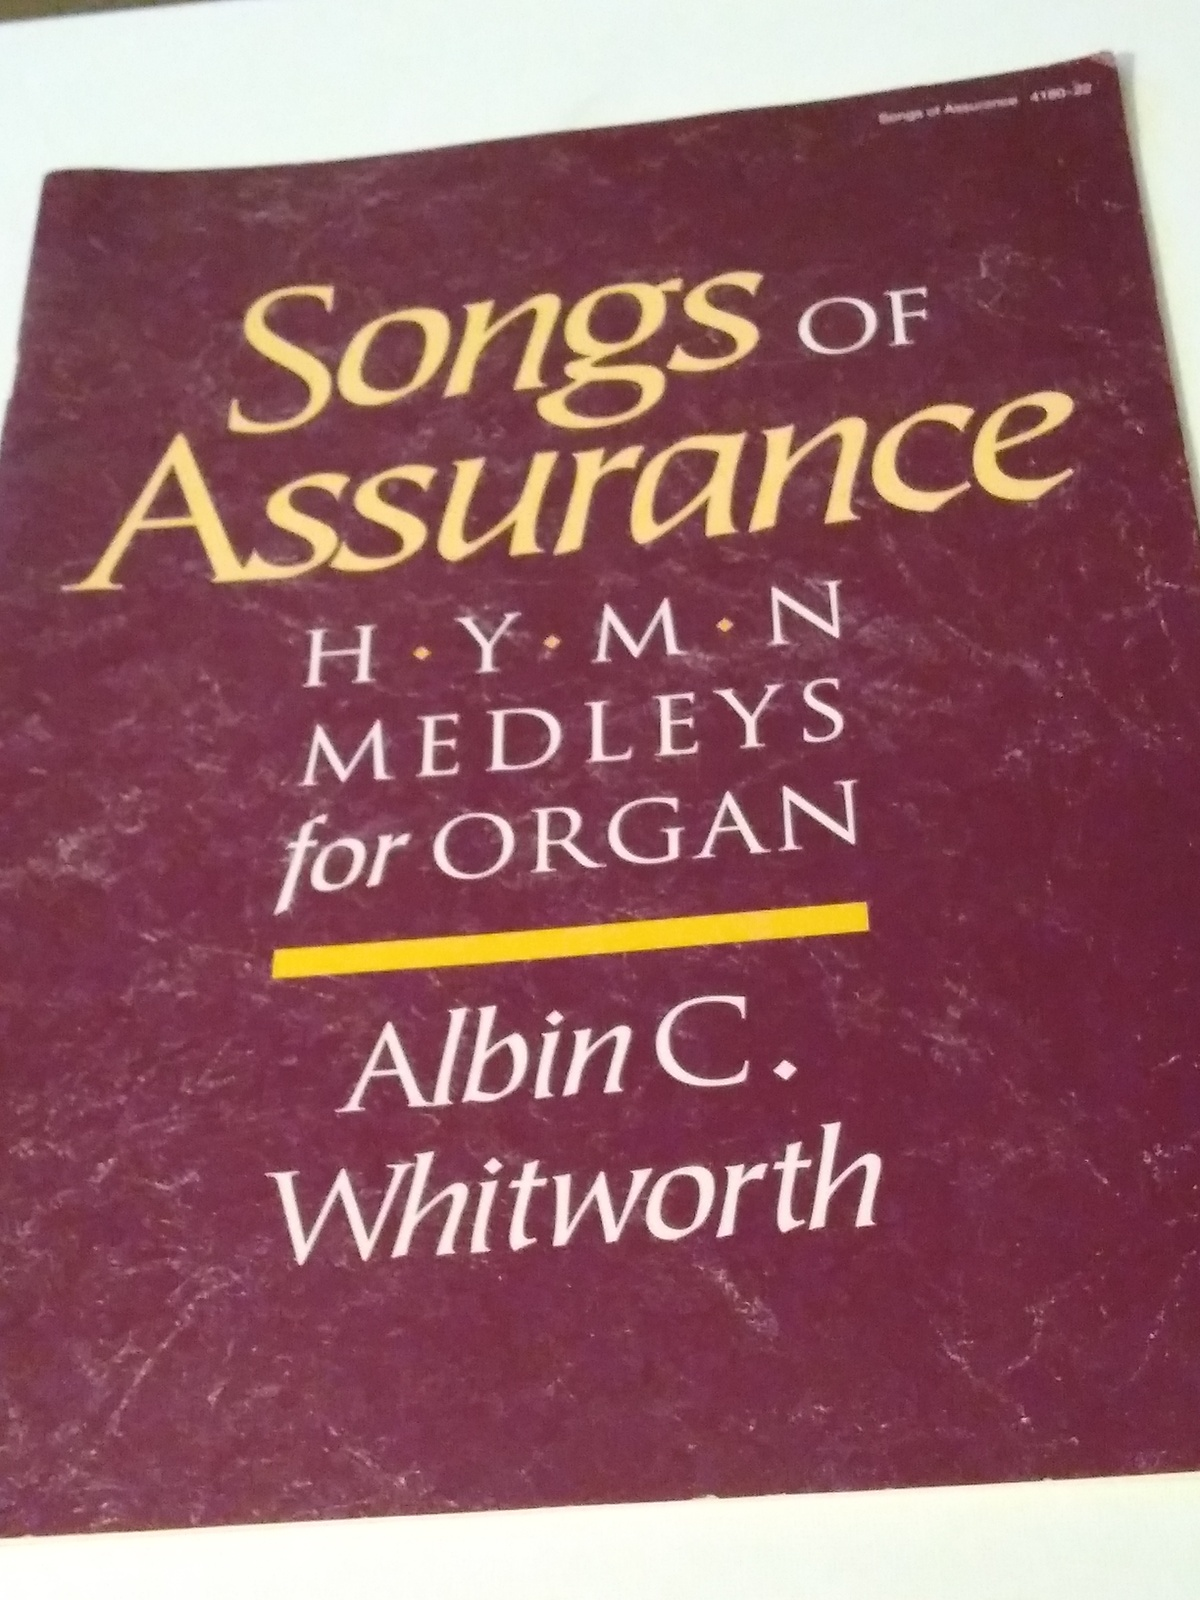 Songs of Assurance Hymn Melodies for Organ Albin C. Whitworth